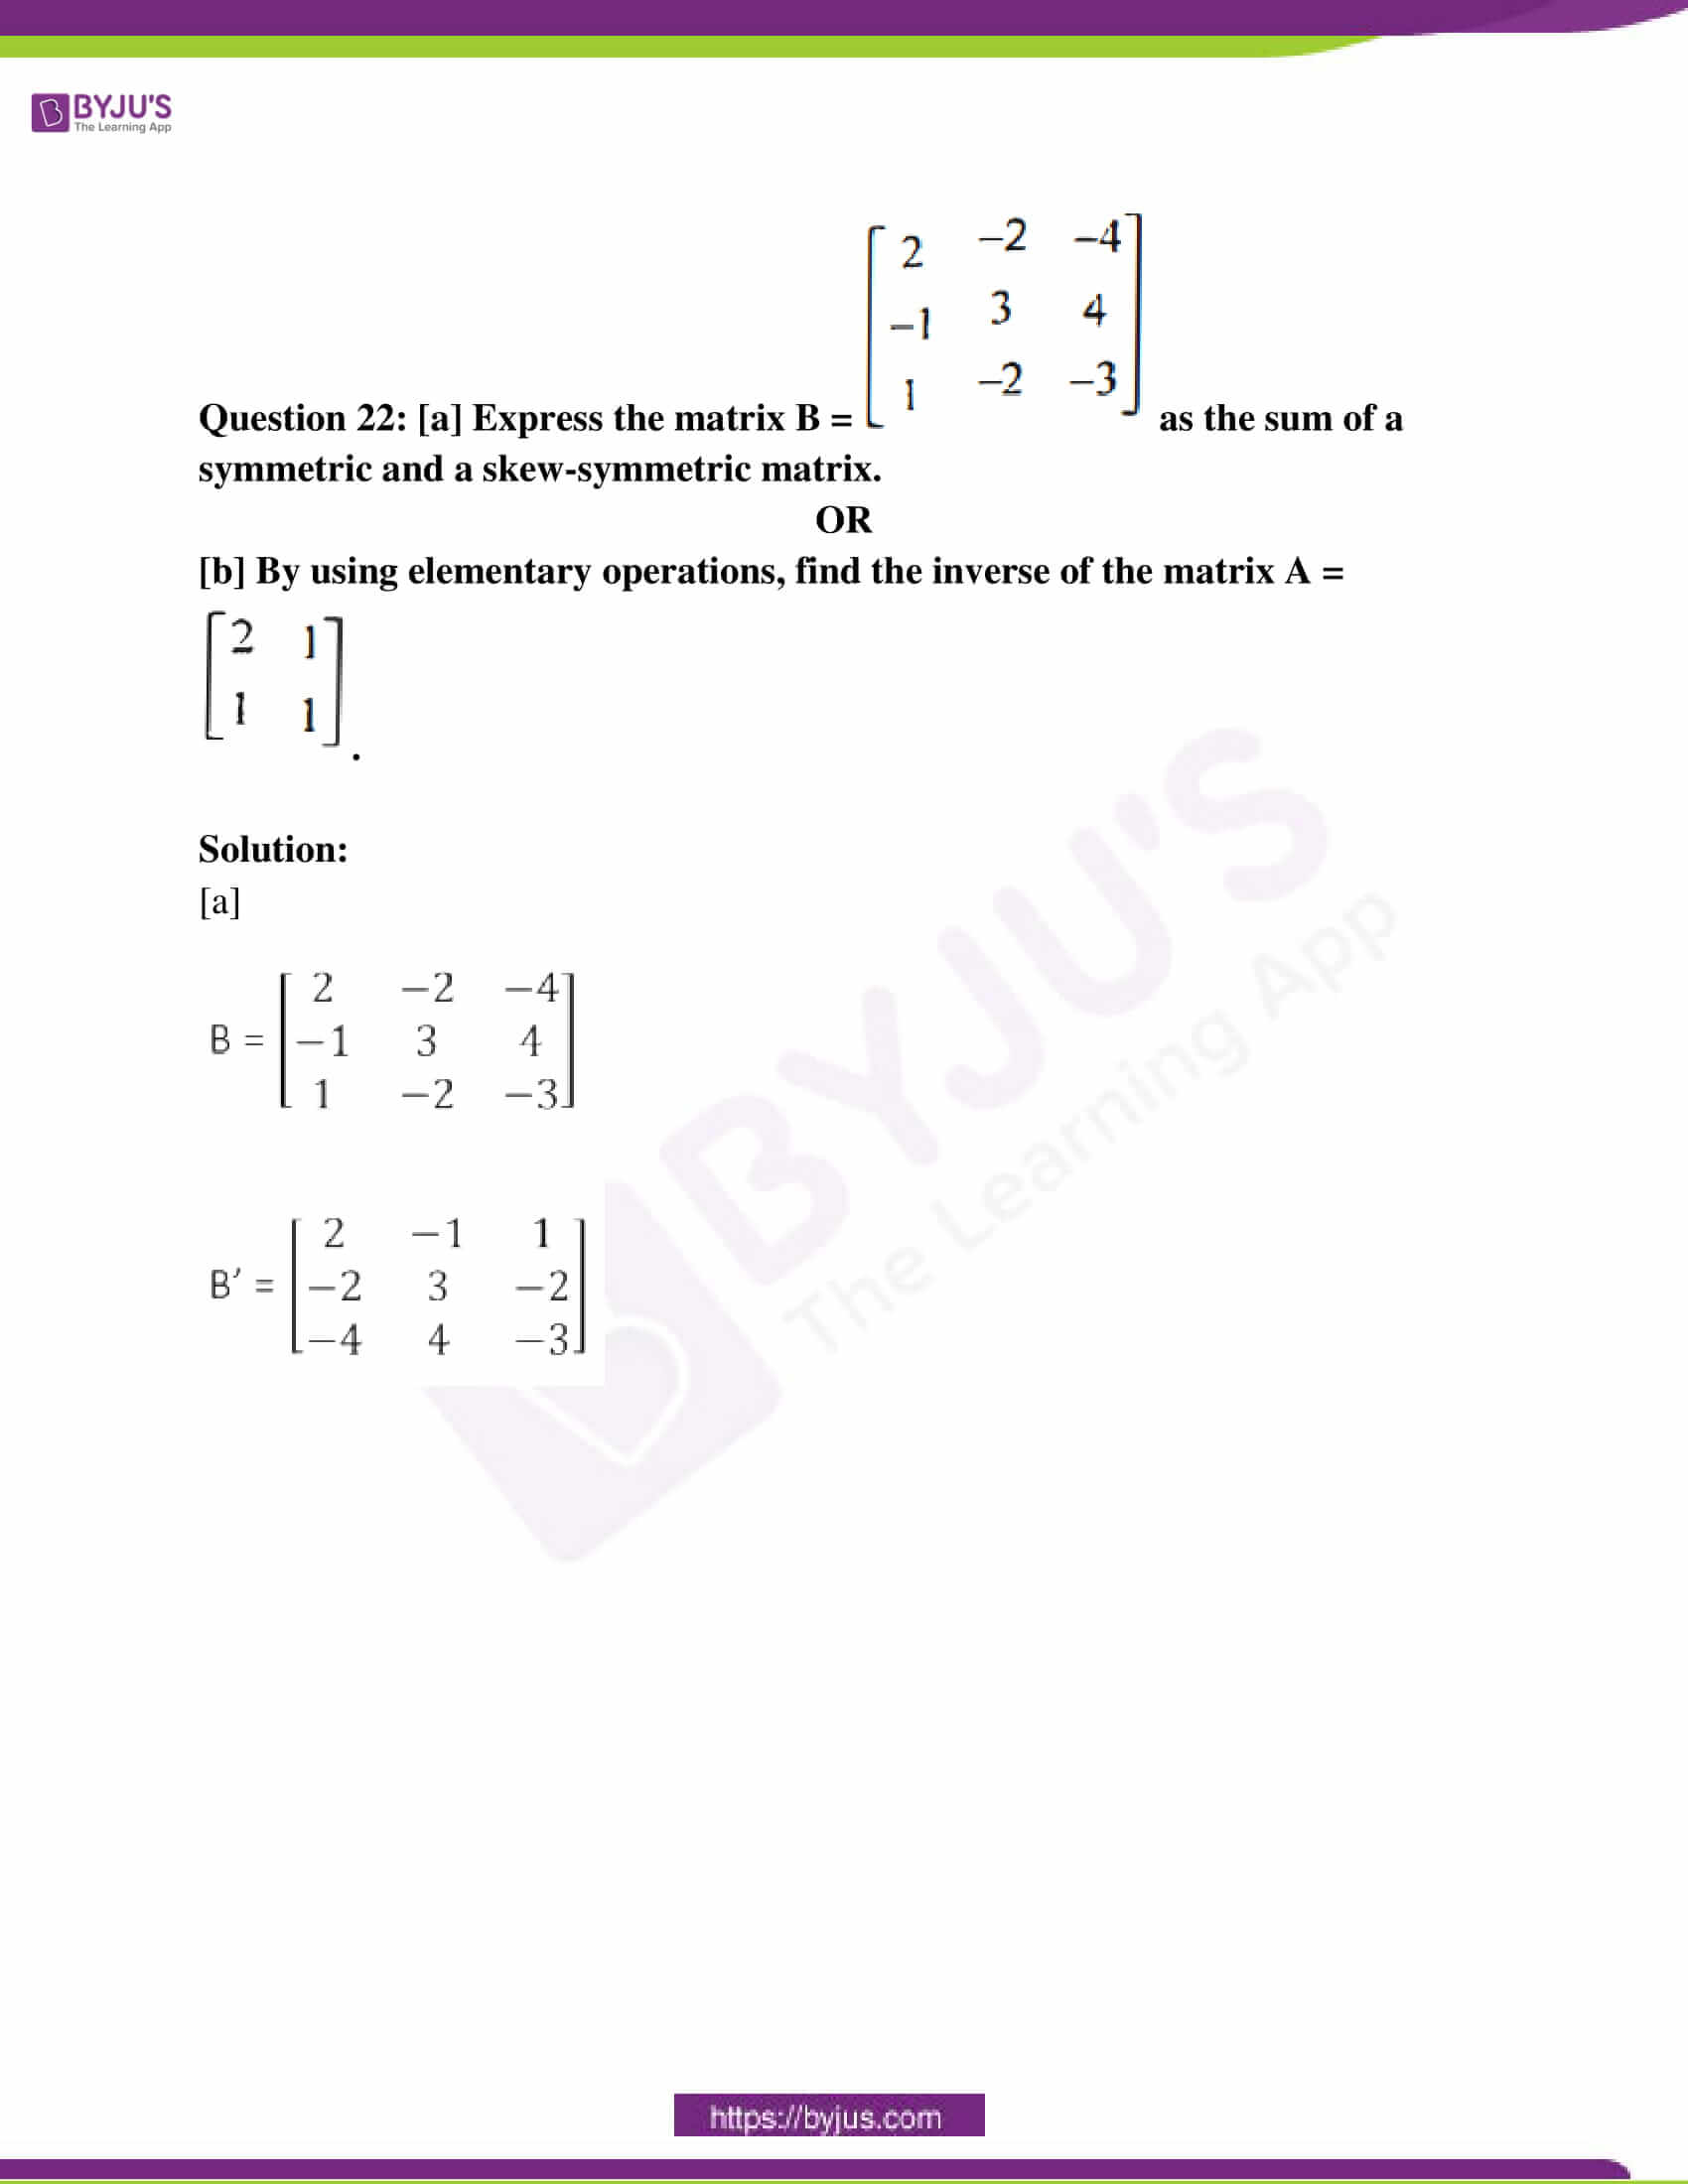 mp board class 12 questions and answers maths 2020 31